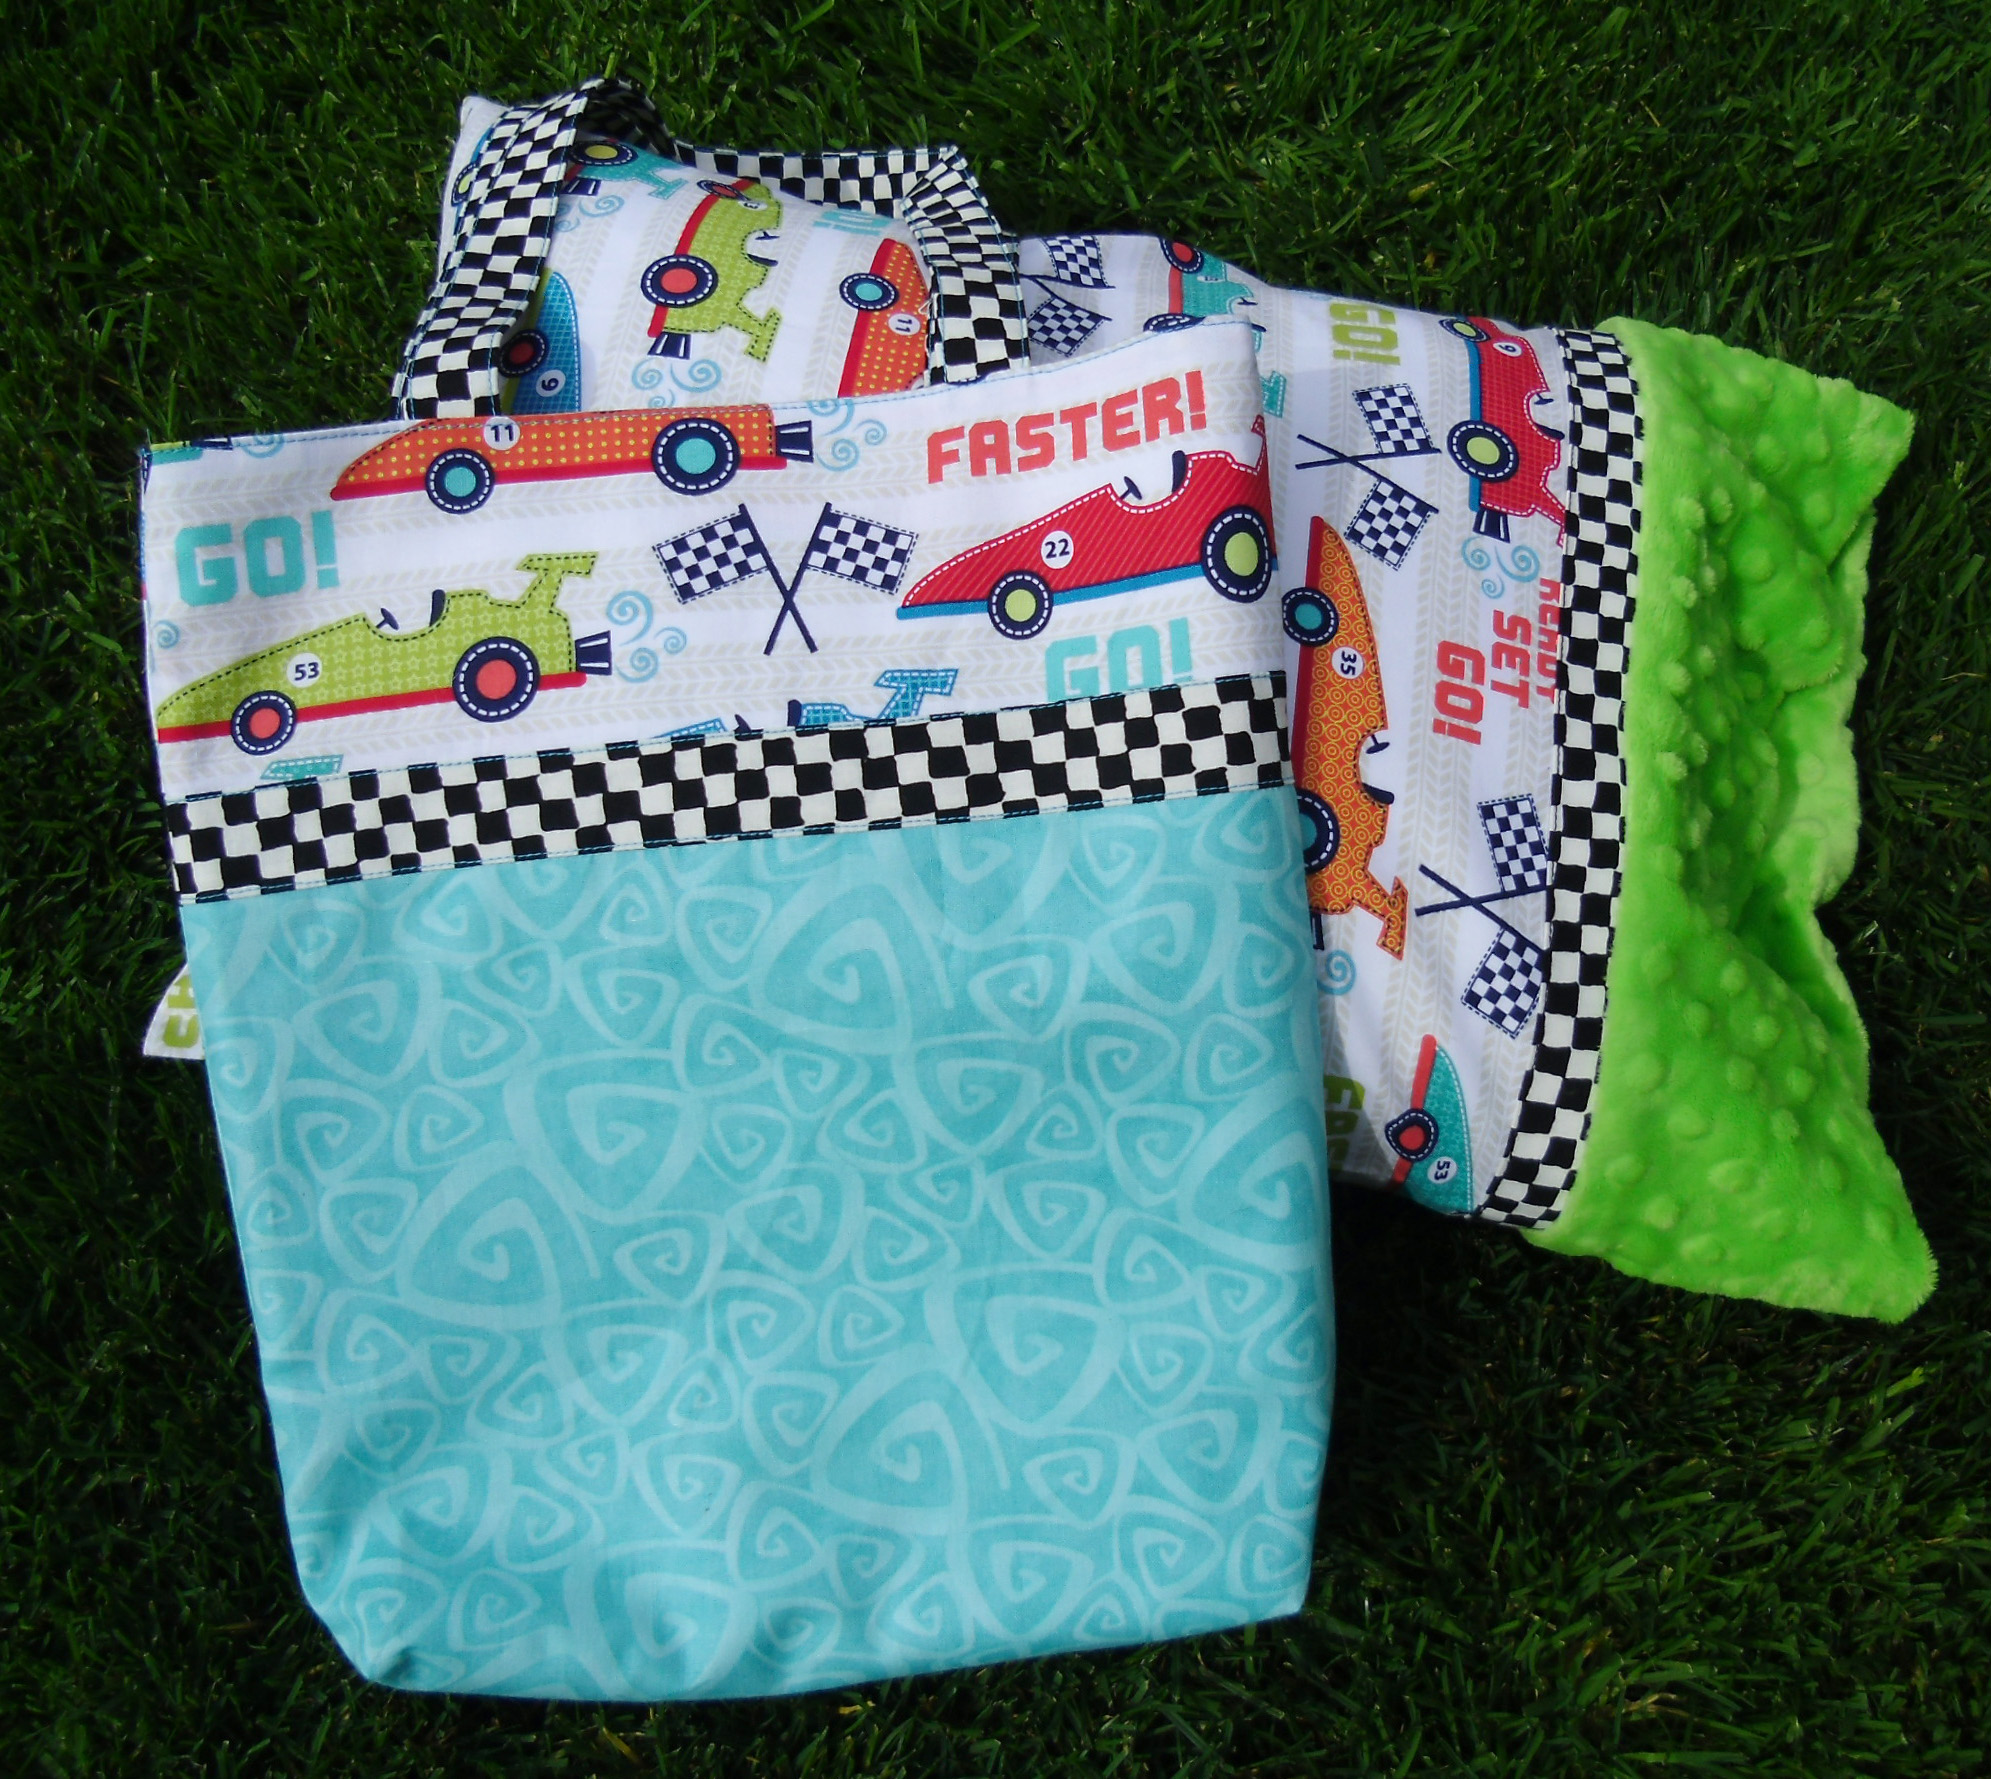 Travel size Pillow Case & Book Bag Tutorial